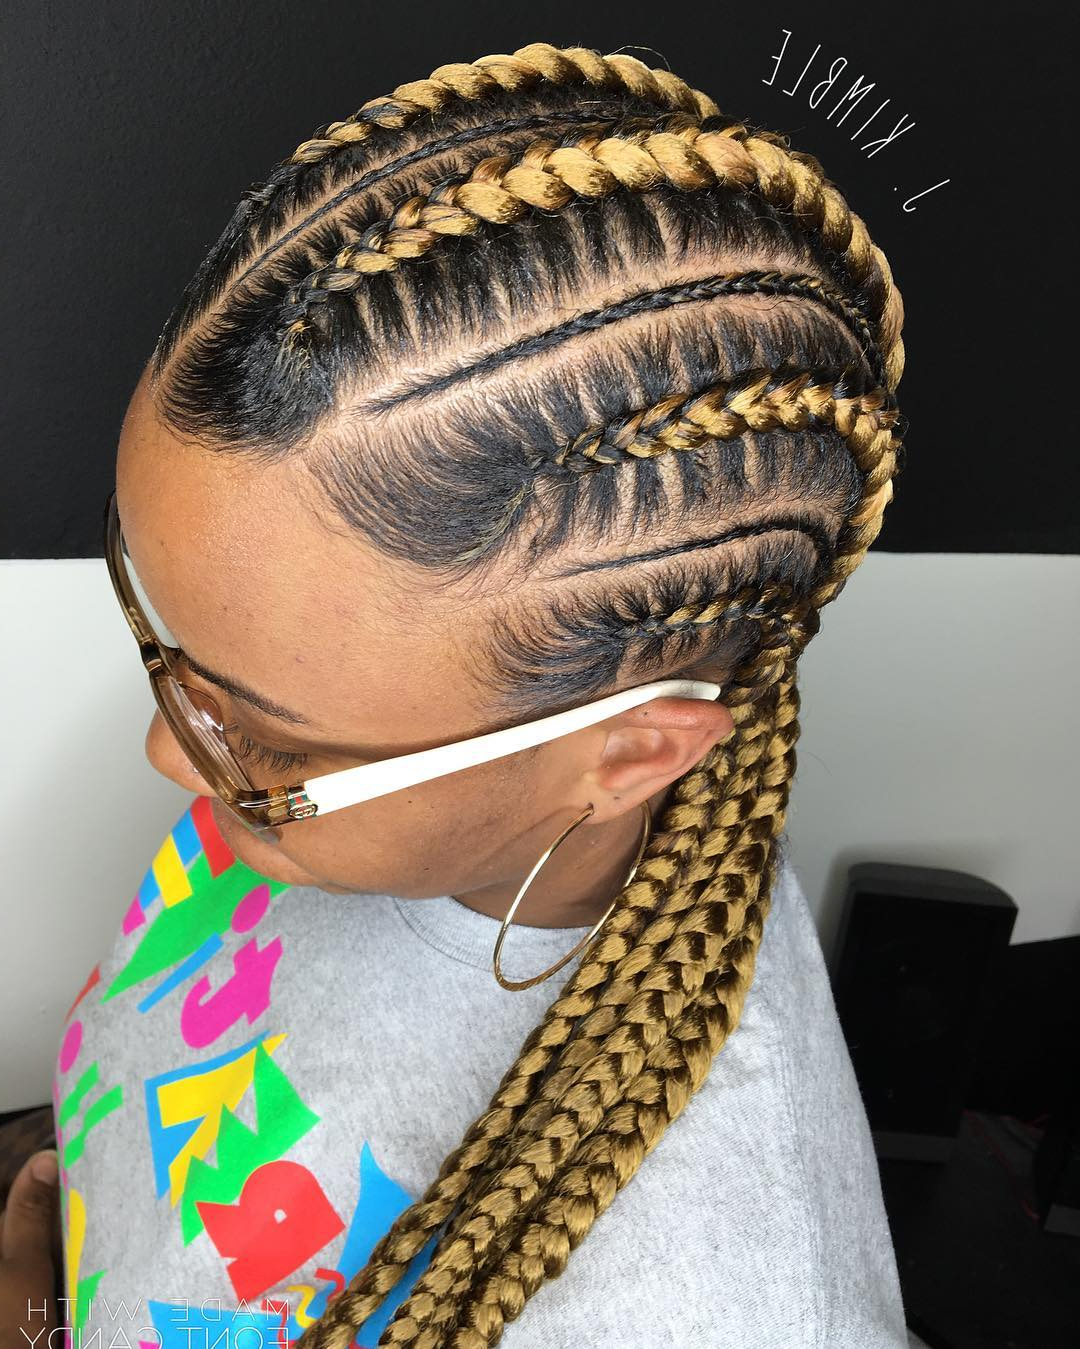 Current Skinny Curvy Cornrow Braided Hairstyles With 70 Best Black Braided Hairstyles That Turn Heads In (View 8 of 20)